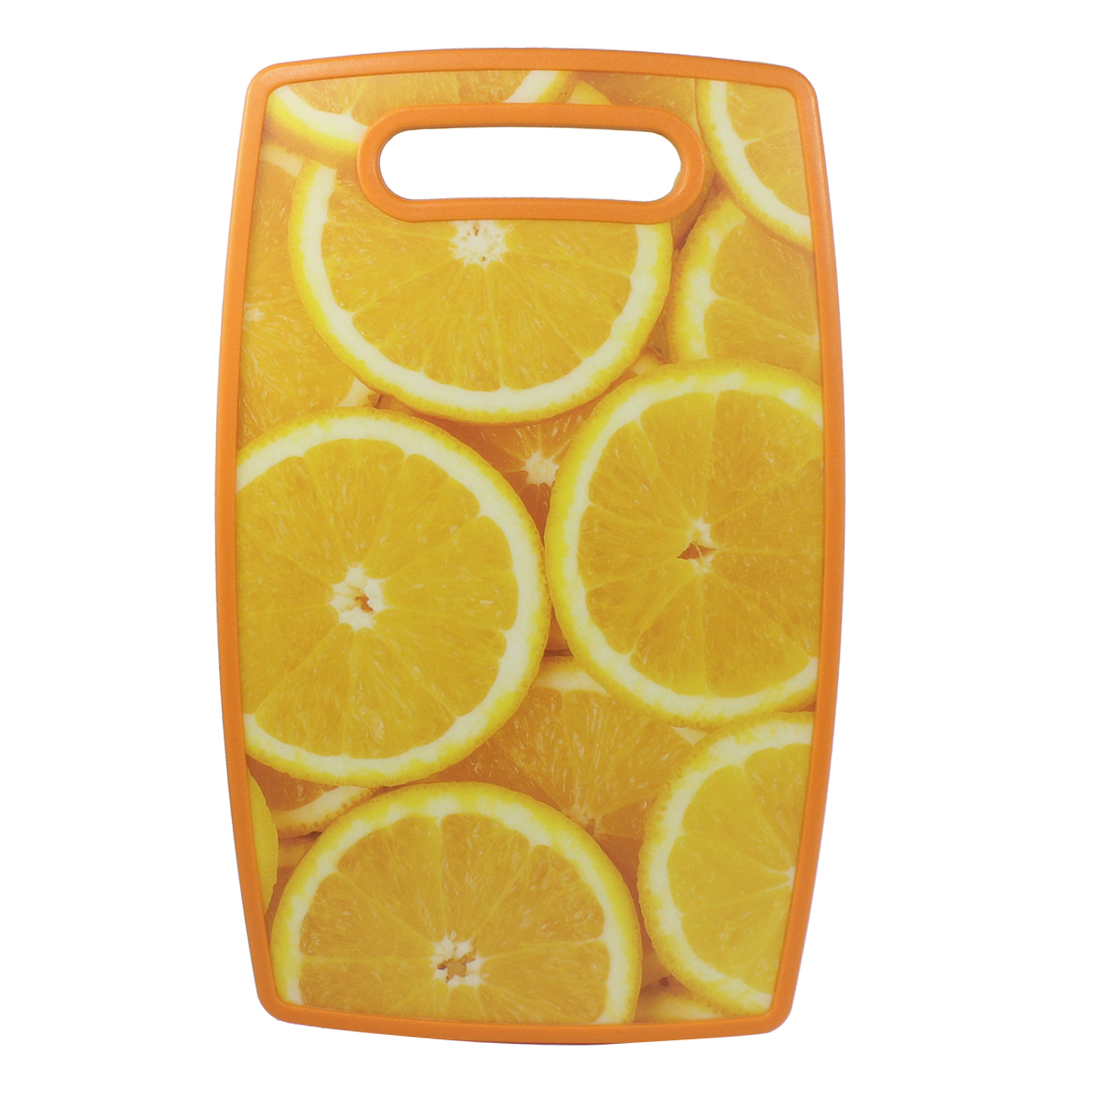 Kitchen Orange Pattern Two-sided Cutting Vegetable Chopping Block